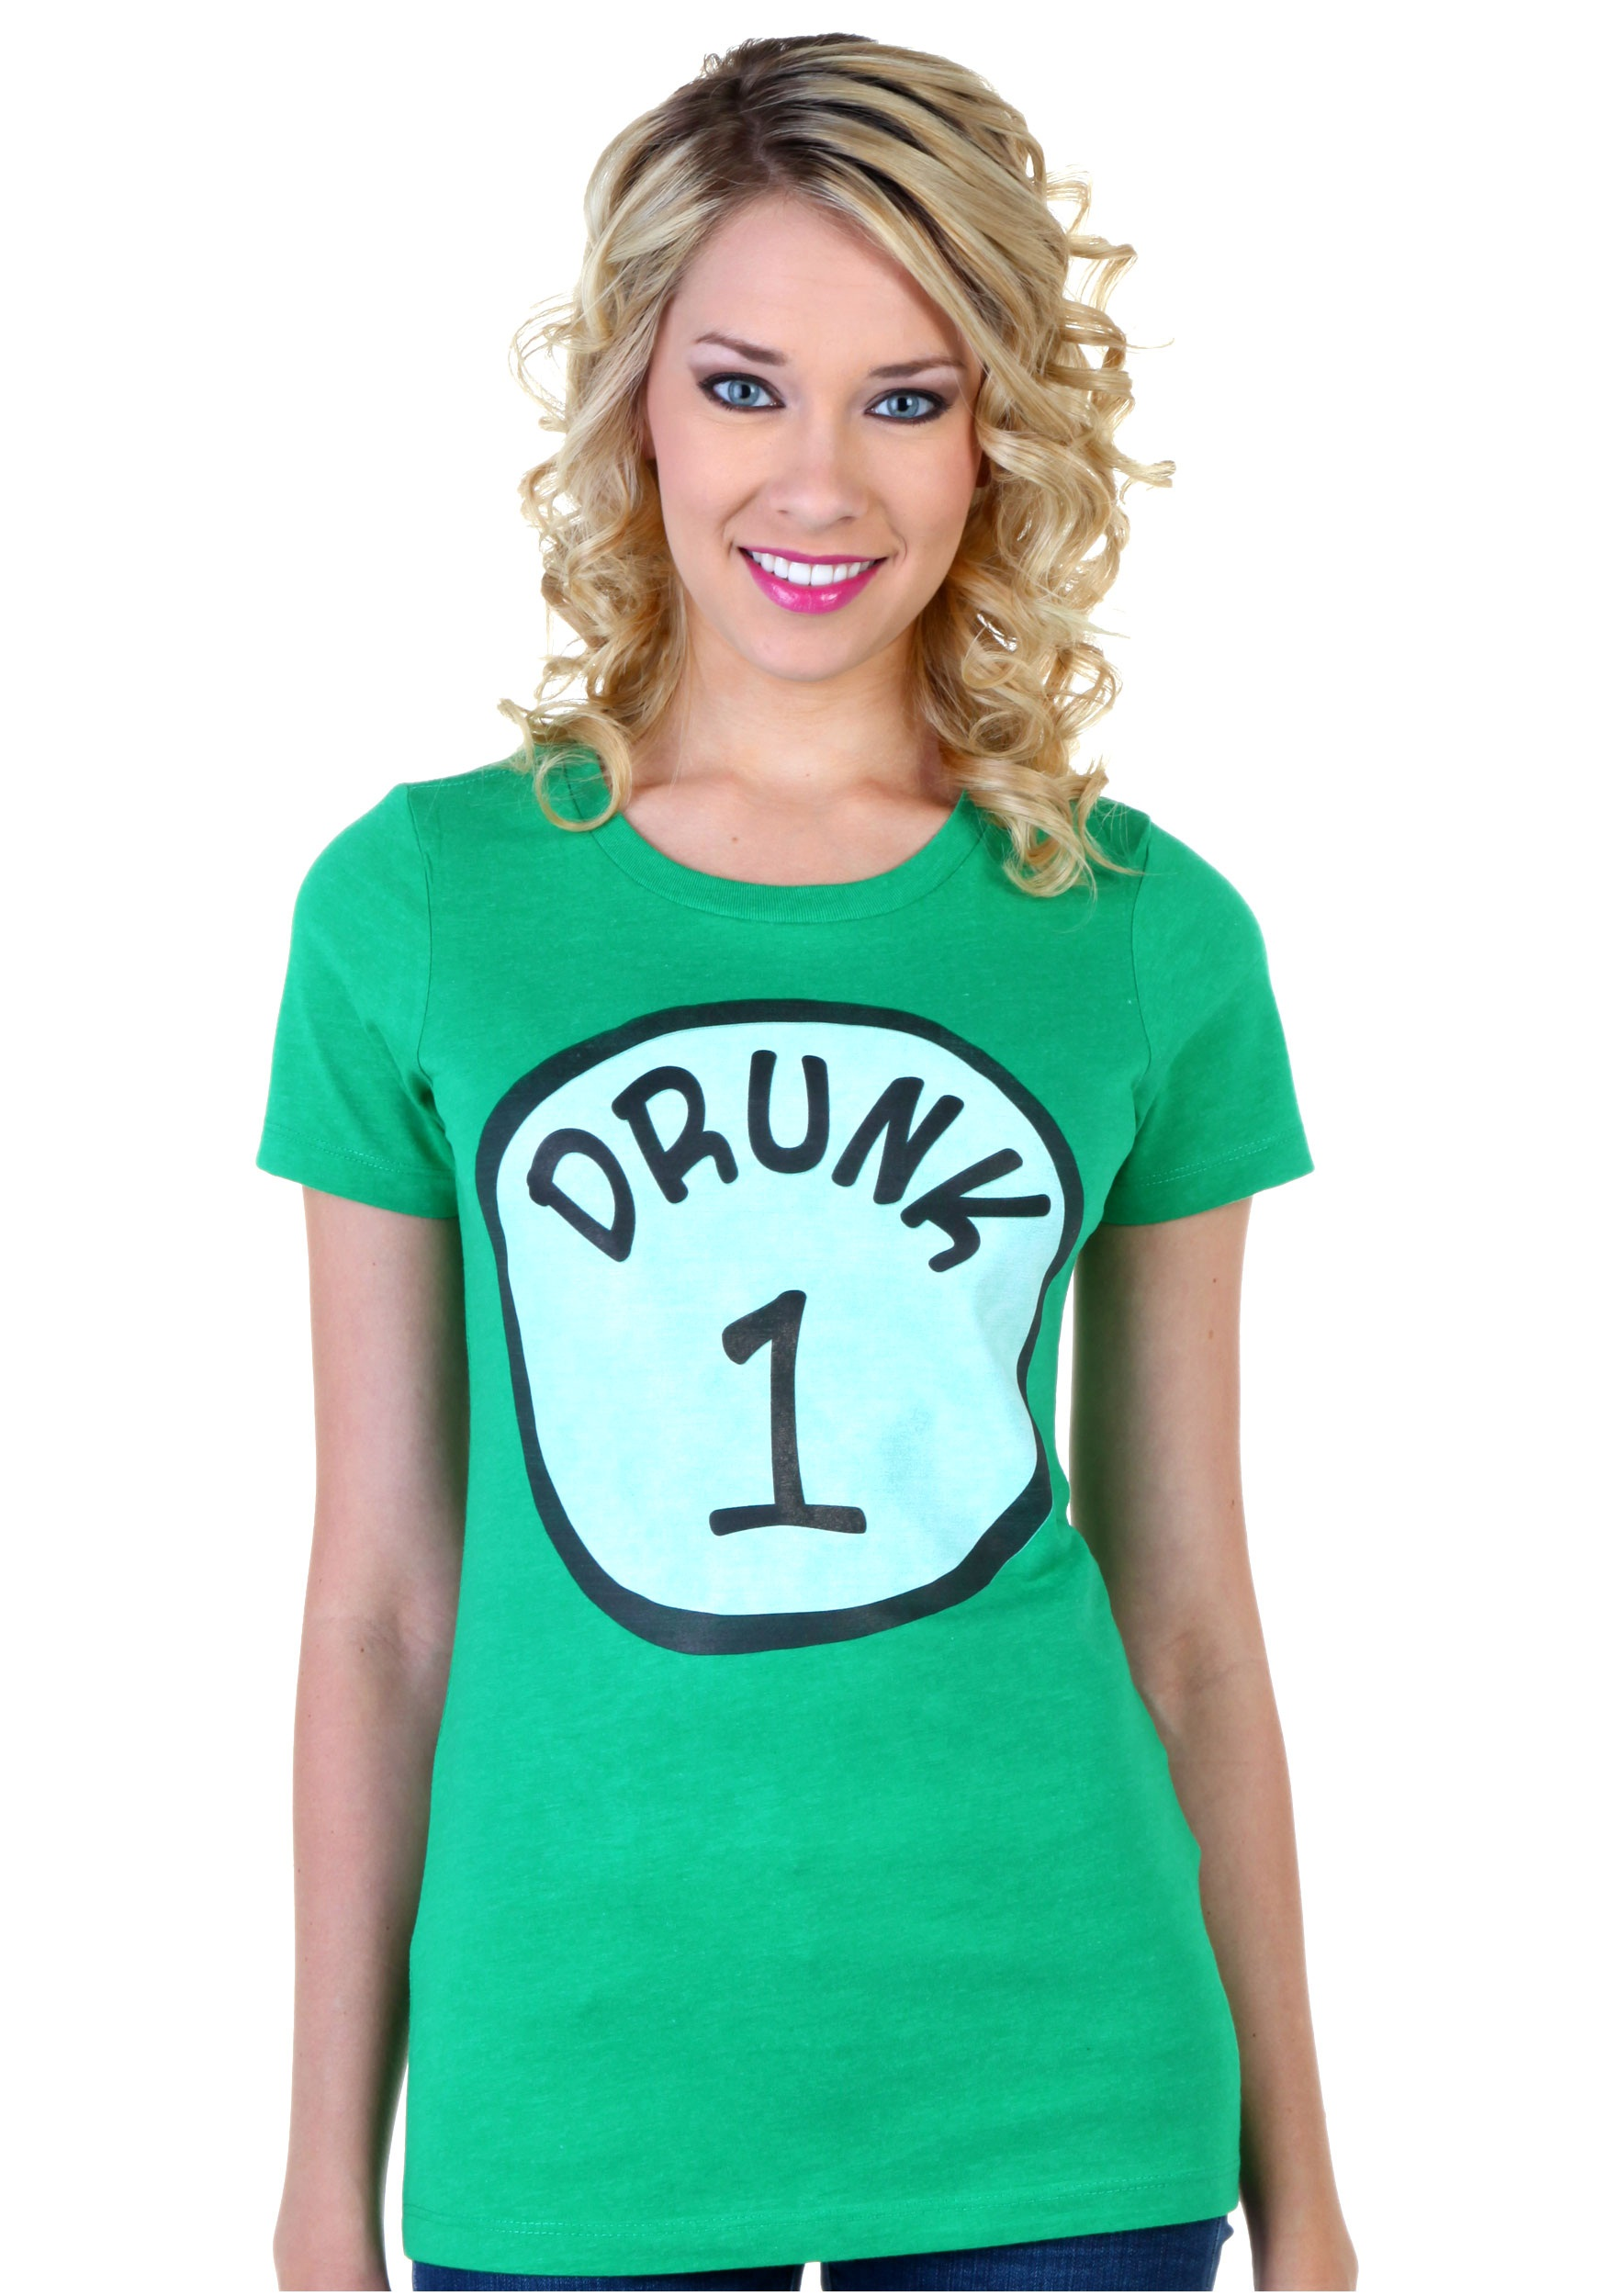 8351ee6ed Womens St. Patricks Day Drunk 1 T-Shirt - Halloween Costumes